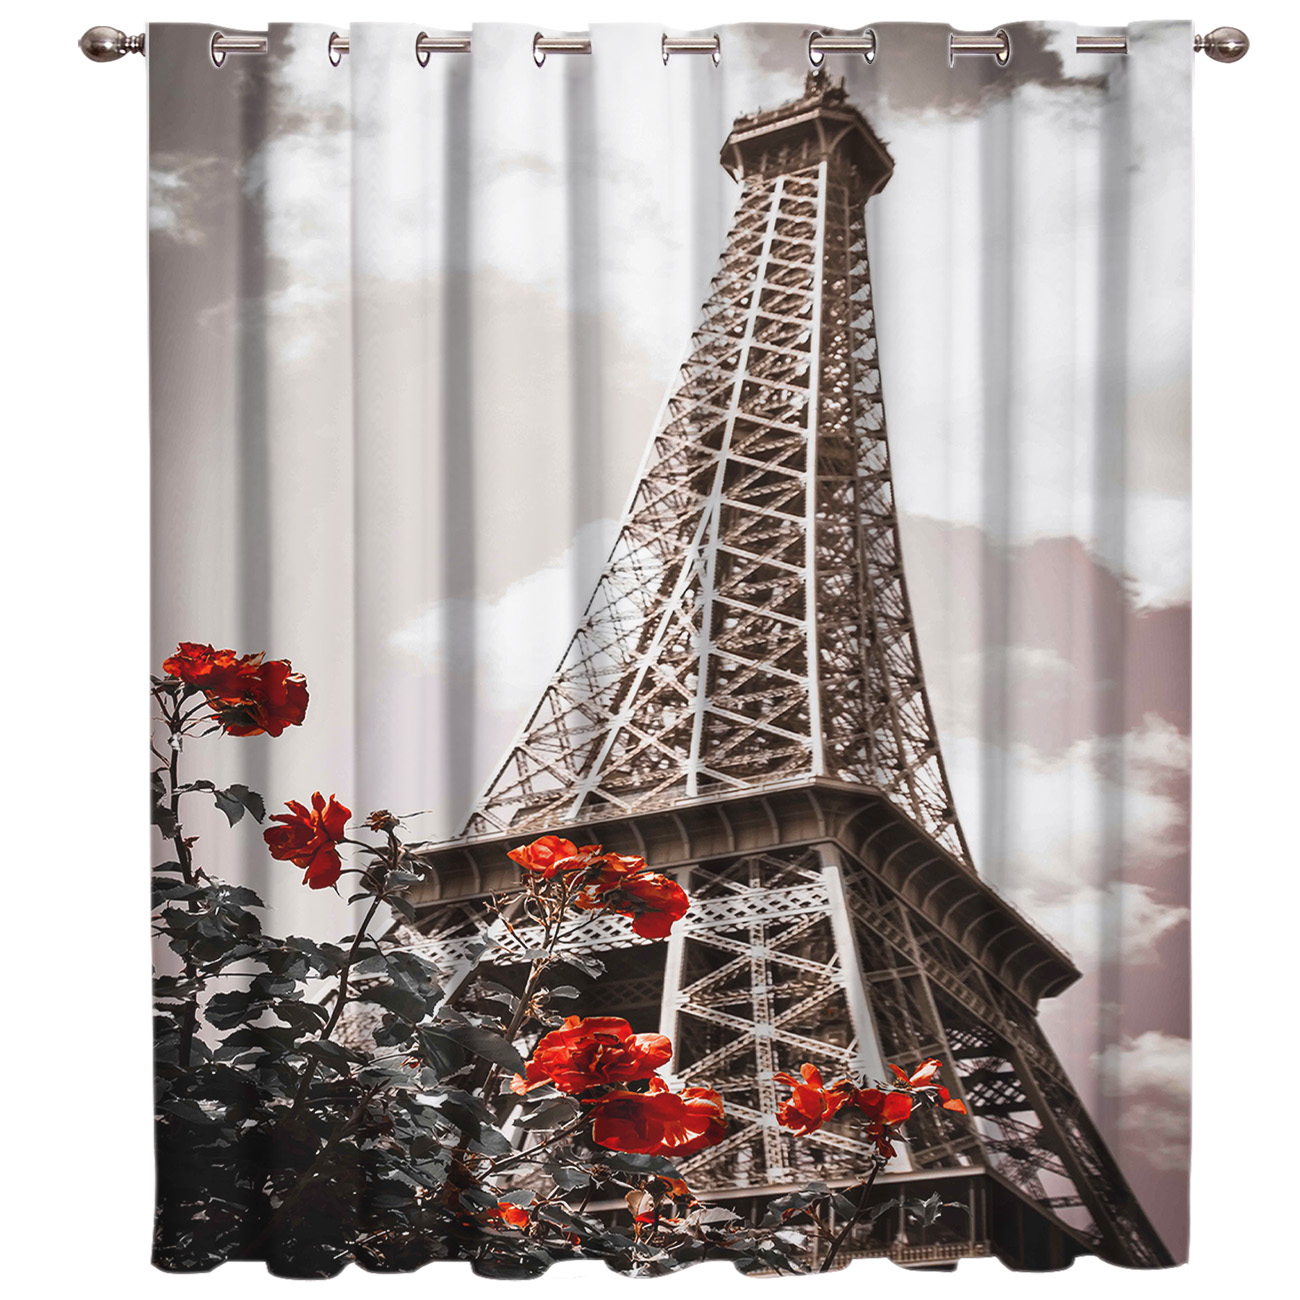 Retro Eiffel Tower Room Curtains Large Window Window Curtains Dark Living Room Bedroom Curtains Bathroom Bedroom Outdoor Fabric